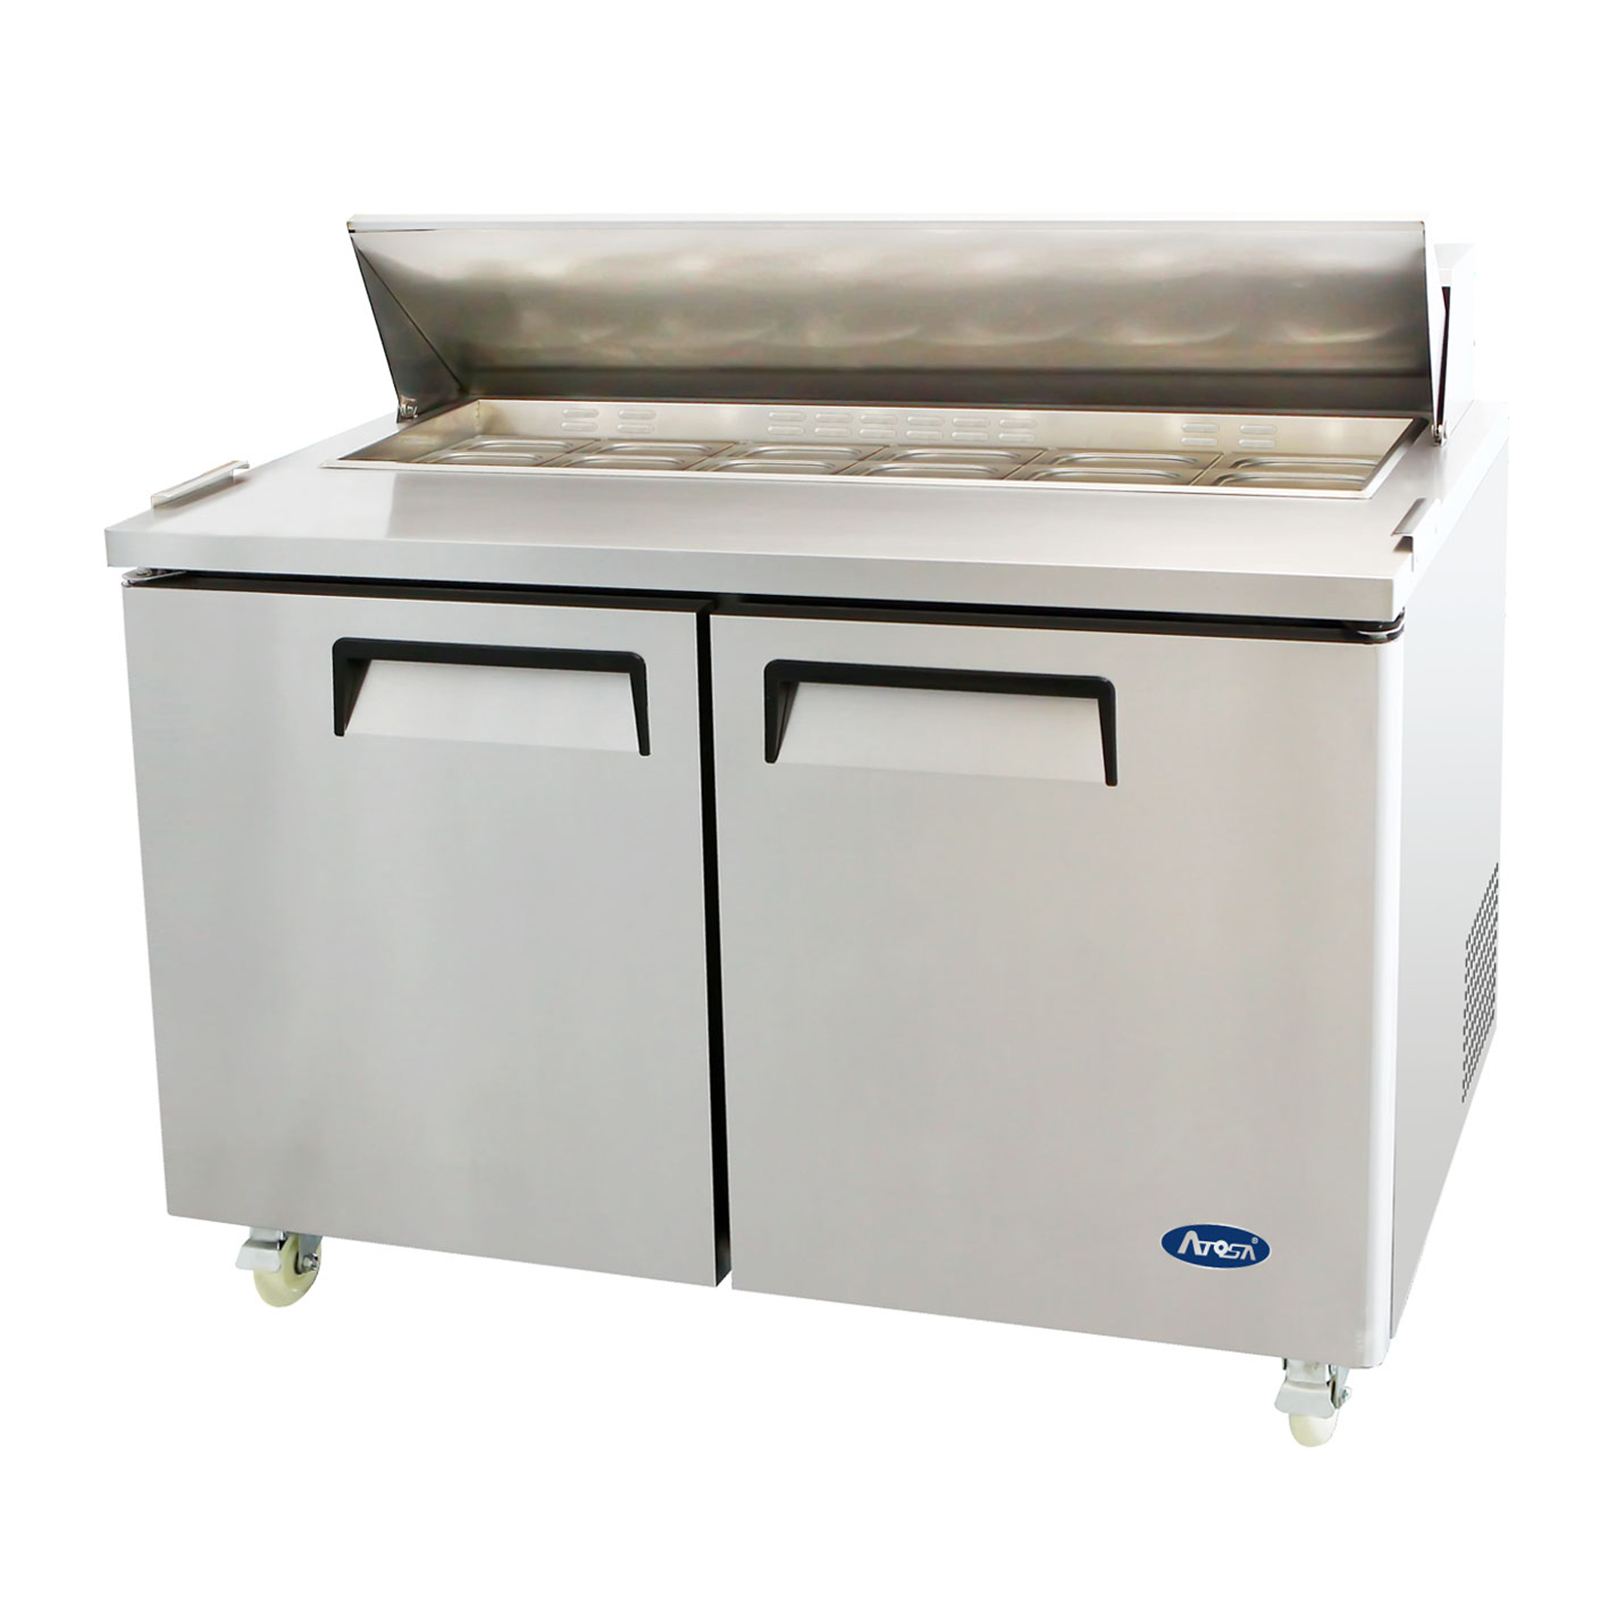 Atosa USA MSF8303GR refrigerated counter, sandwich / salad unit